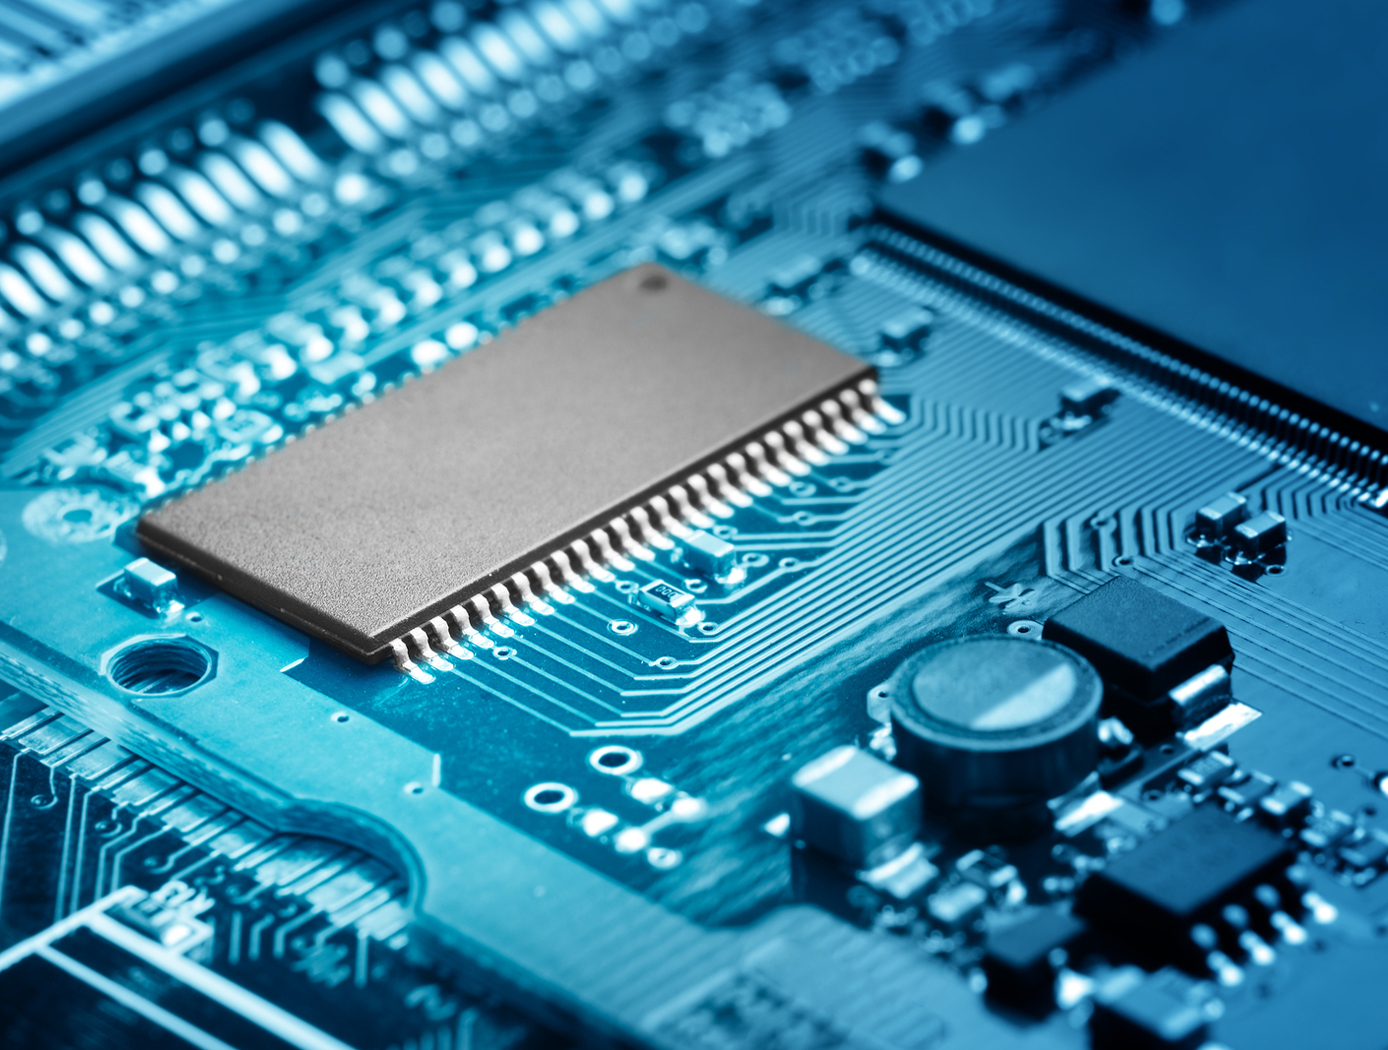 Search Results Or Photo Of Circuit Board Skinned Human Close Up And Binary Code Copper Nanowire Production For Interconnect Applications